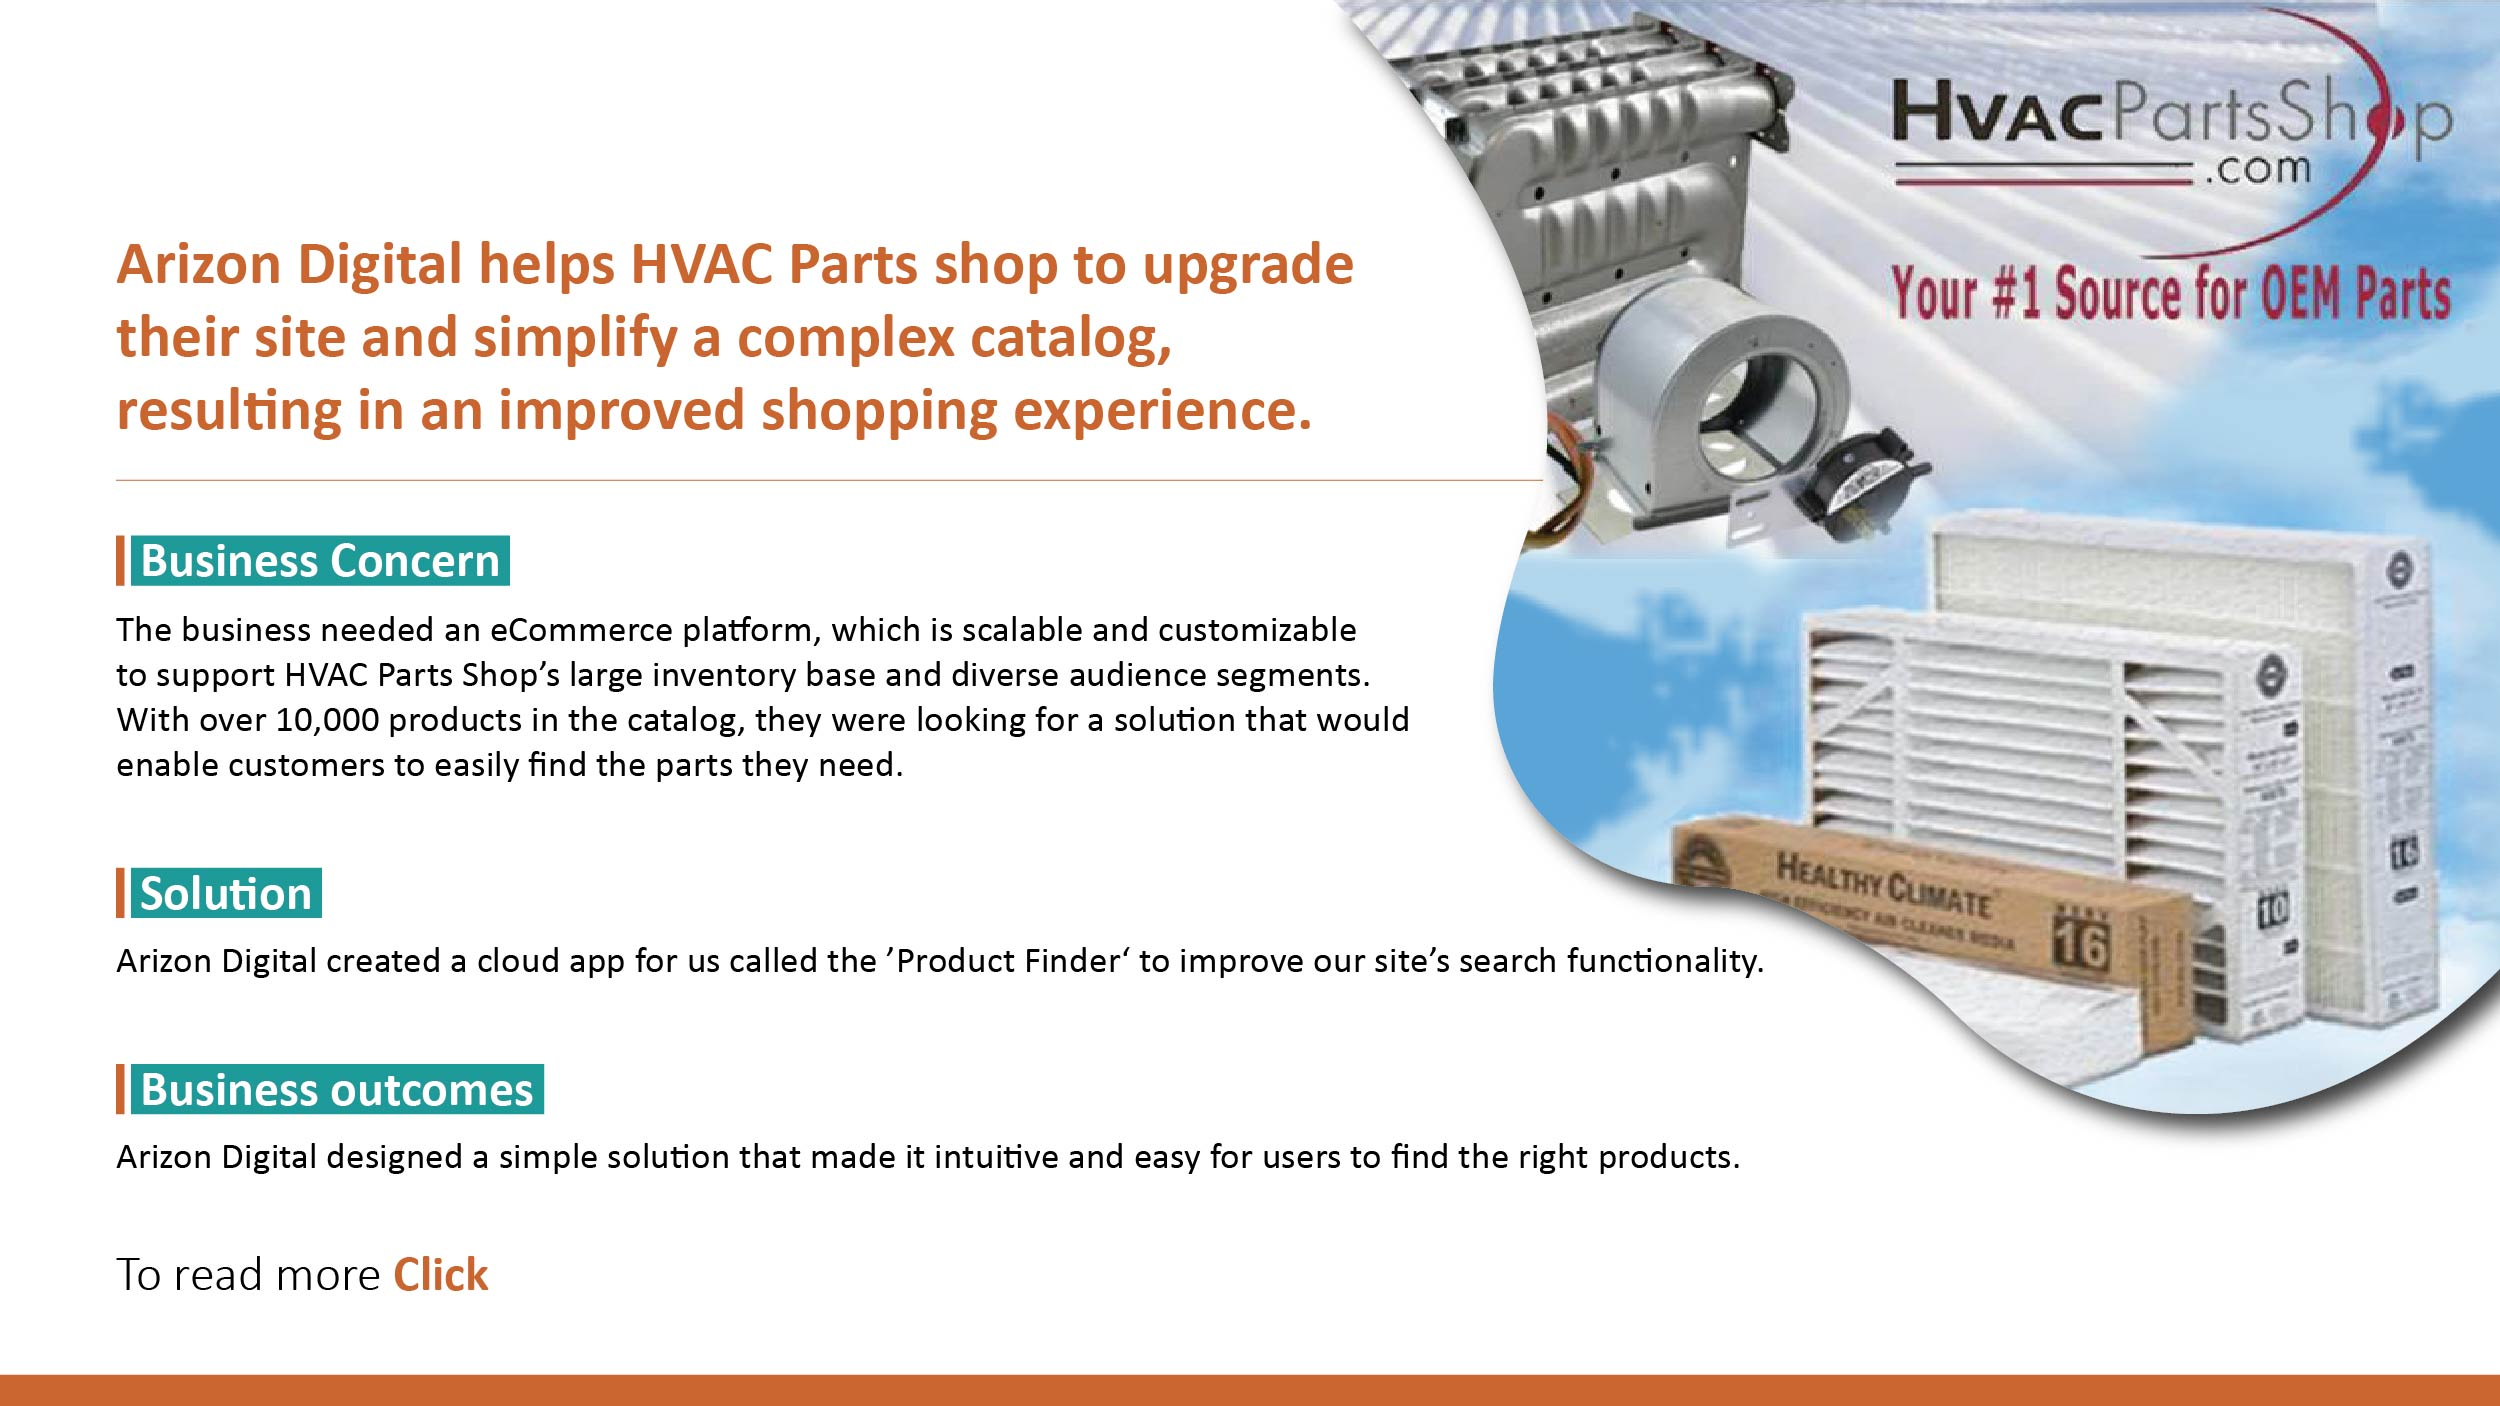 Arizon Digital helps HVAC Parts shop to upgrade their site and simplify a complex catalog,resulting in an improved shopping experience.